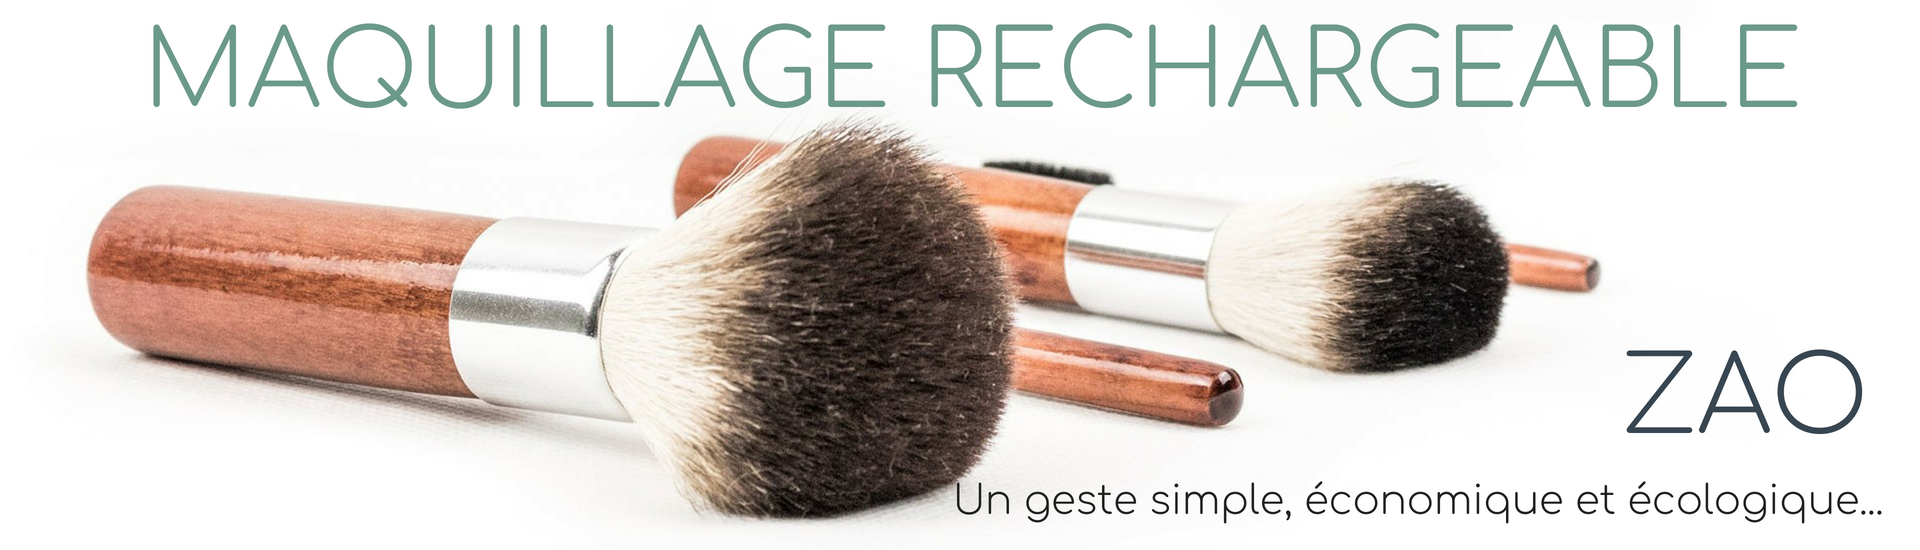 maquillage rechargeable